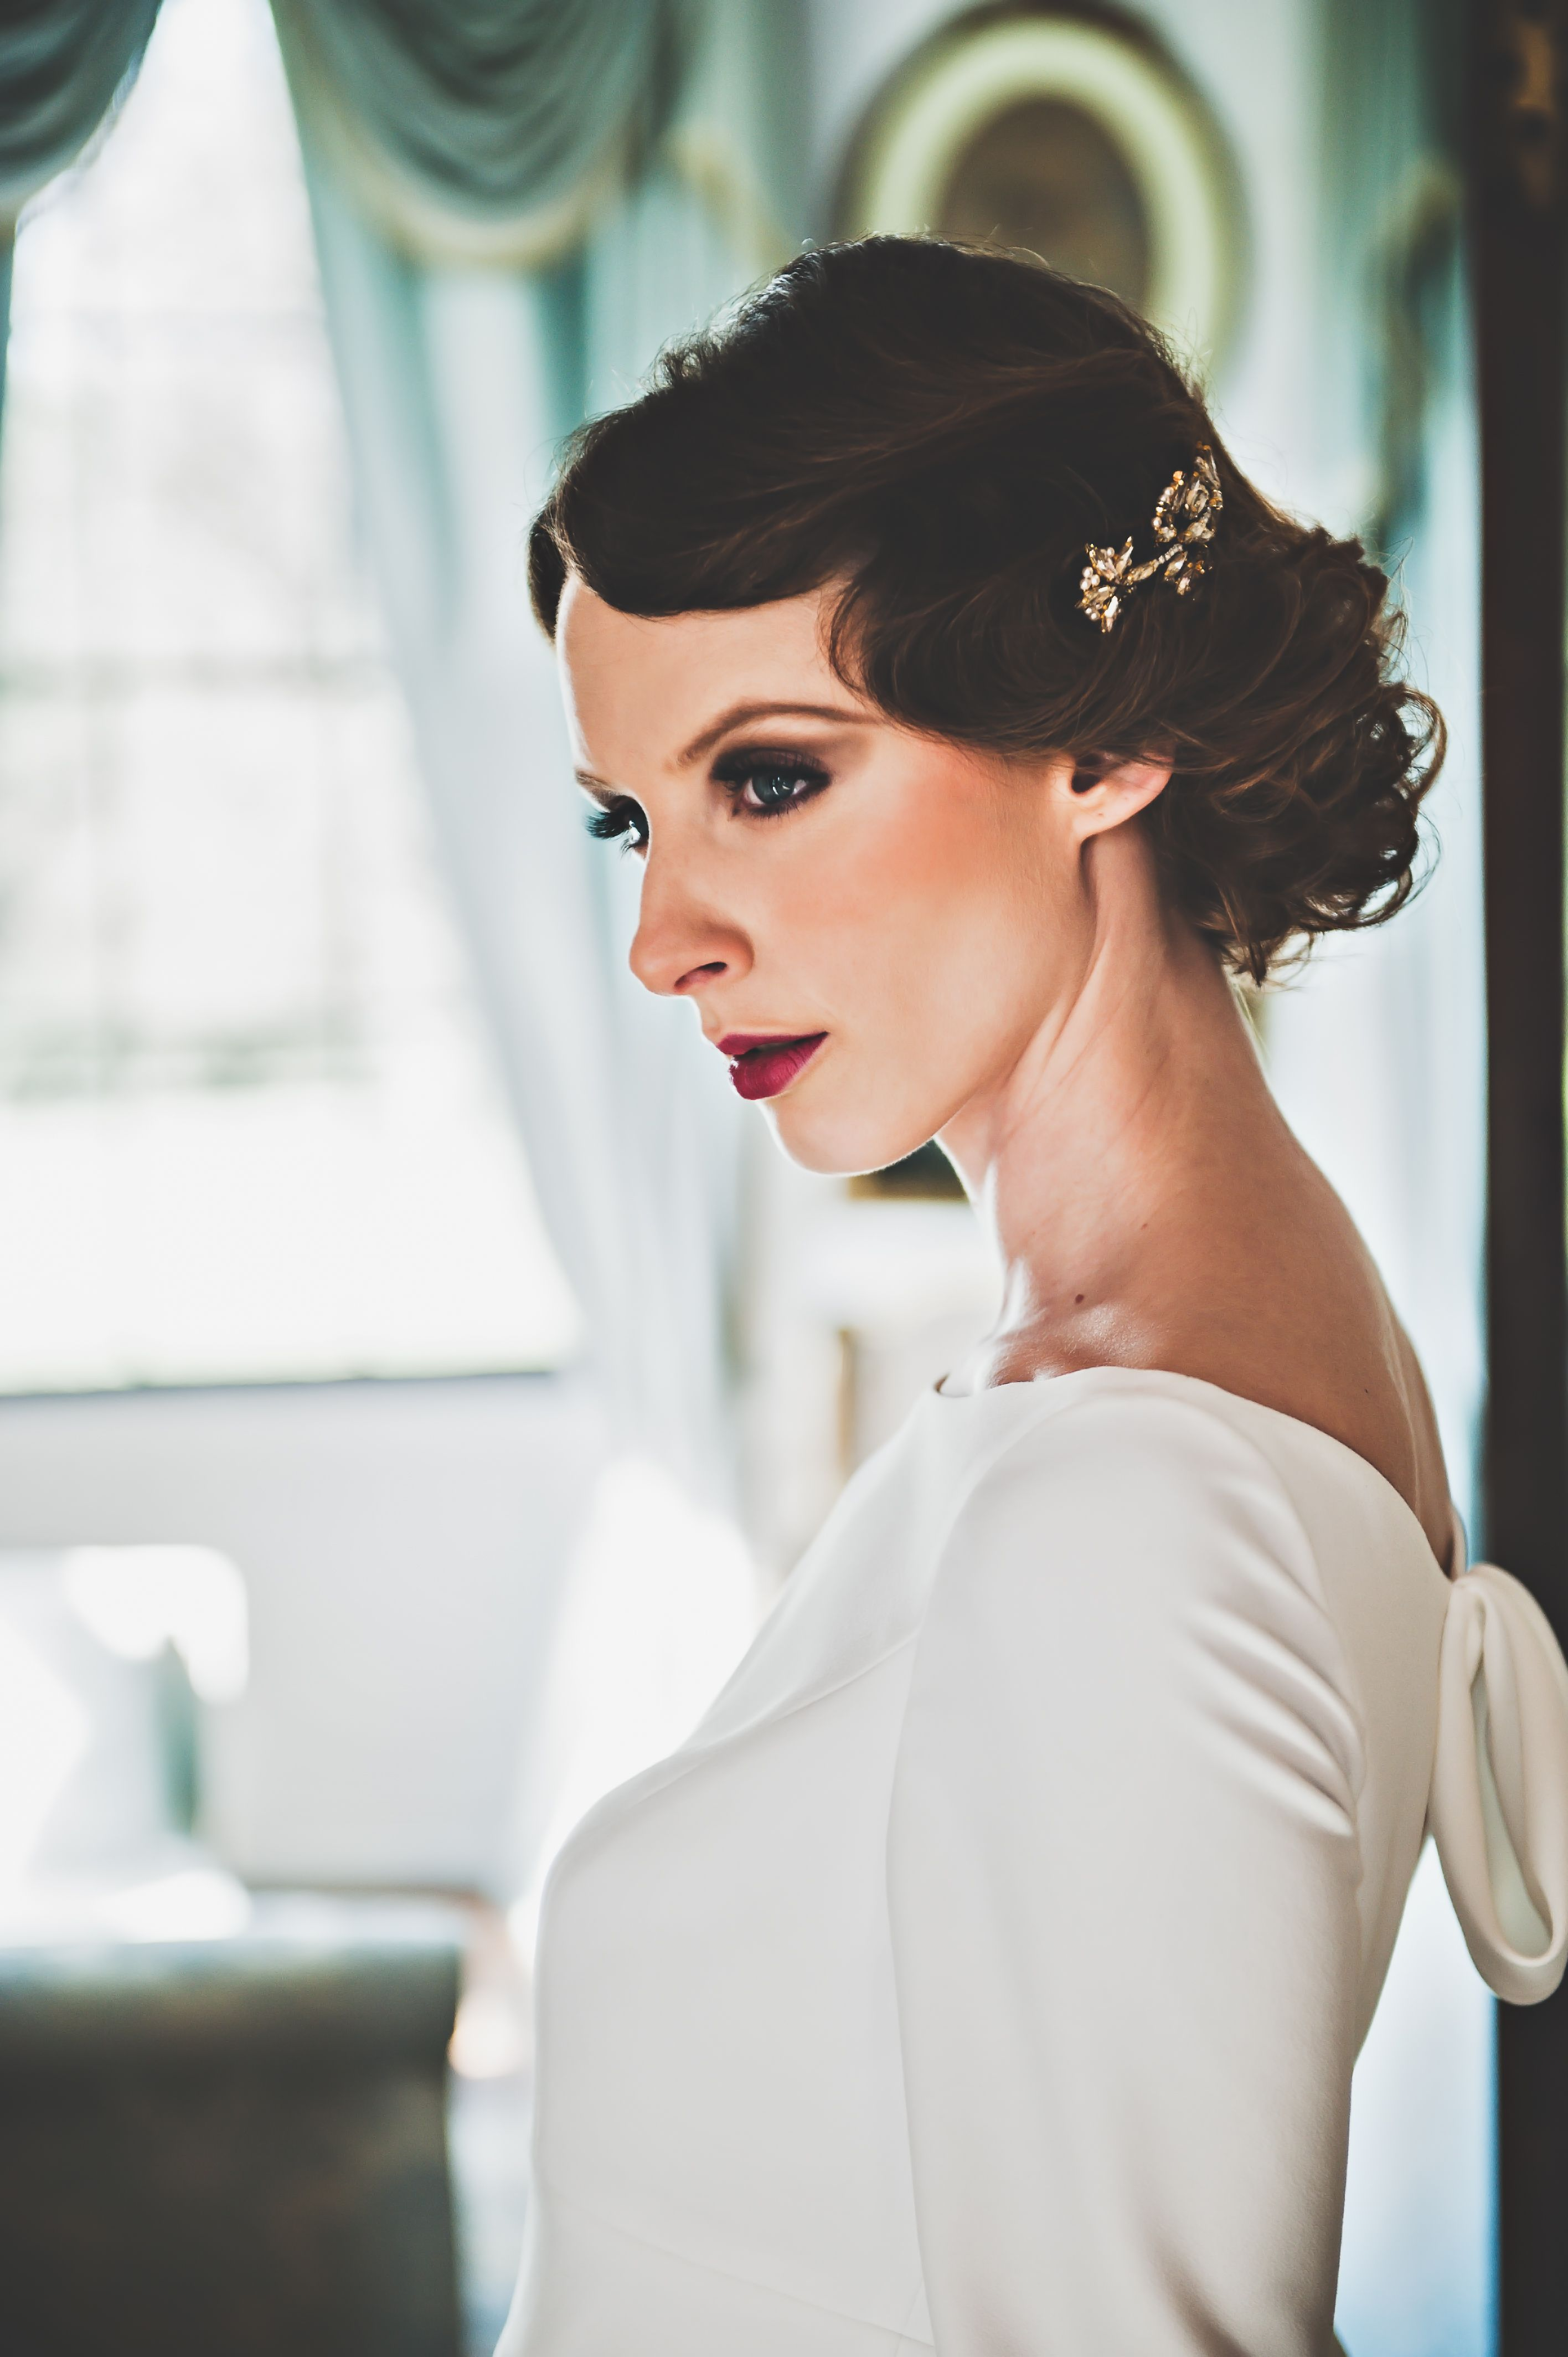 1930\'s bride makeup design by me - Image ikonworks | Editorial ...